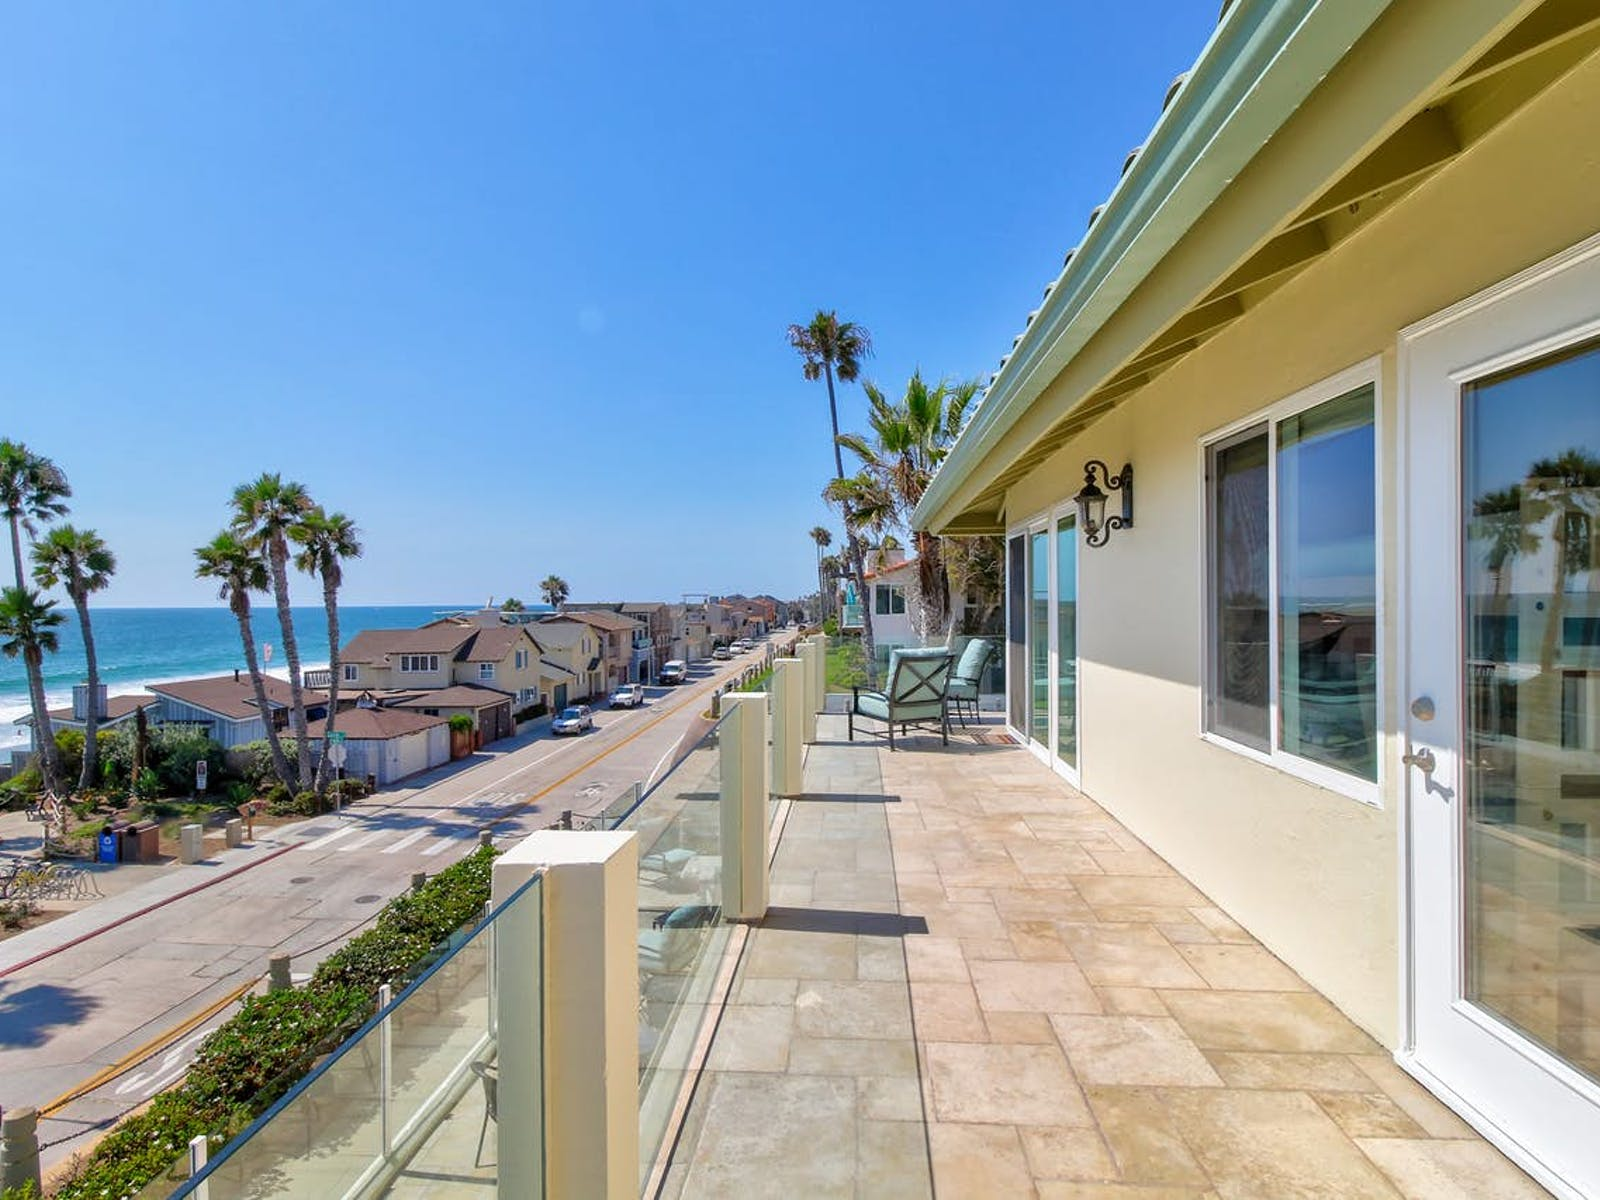 Blue skies and coastline of vacation rentals in Oceanside, CA